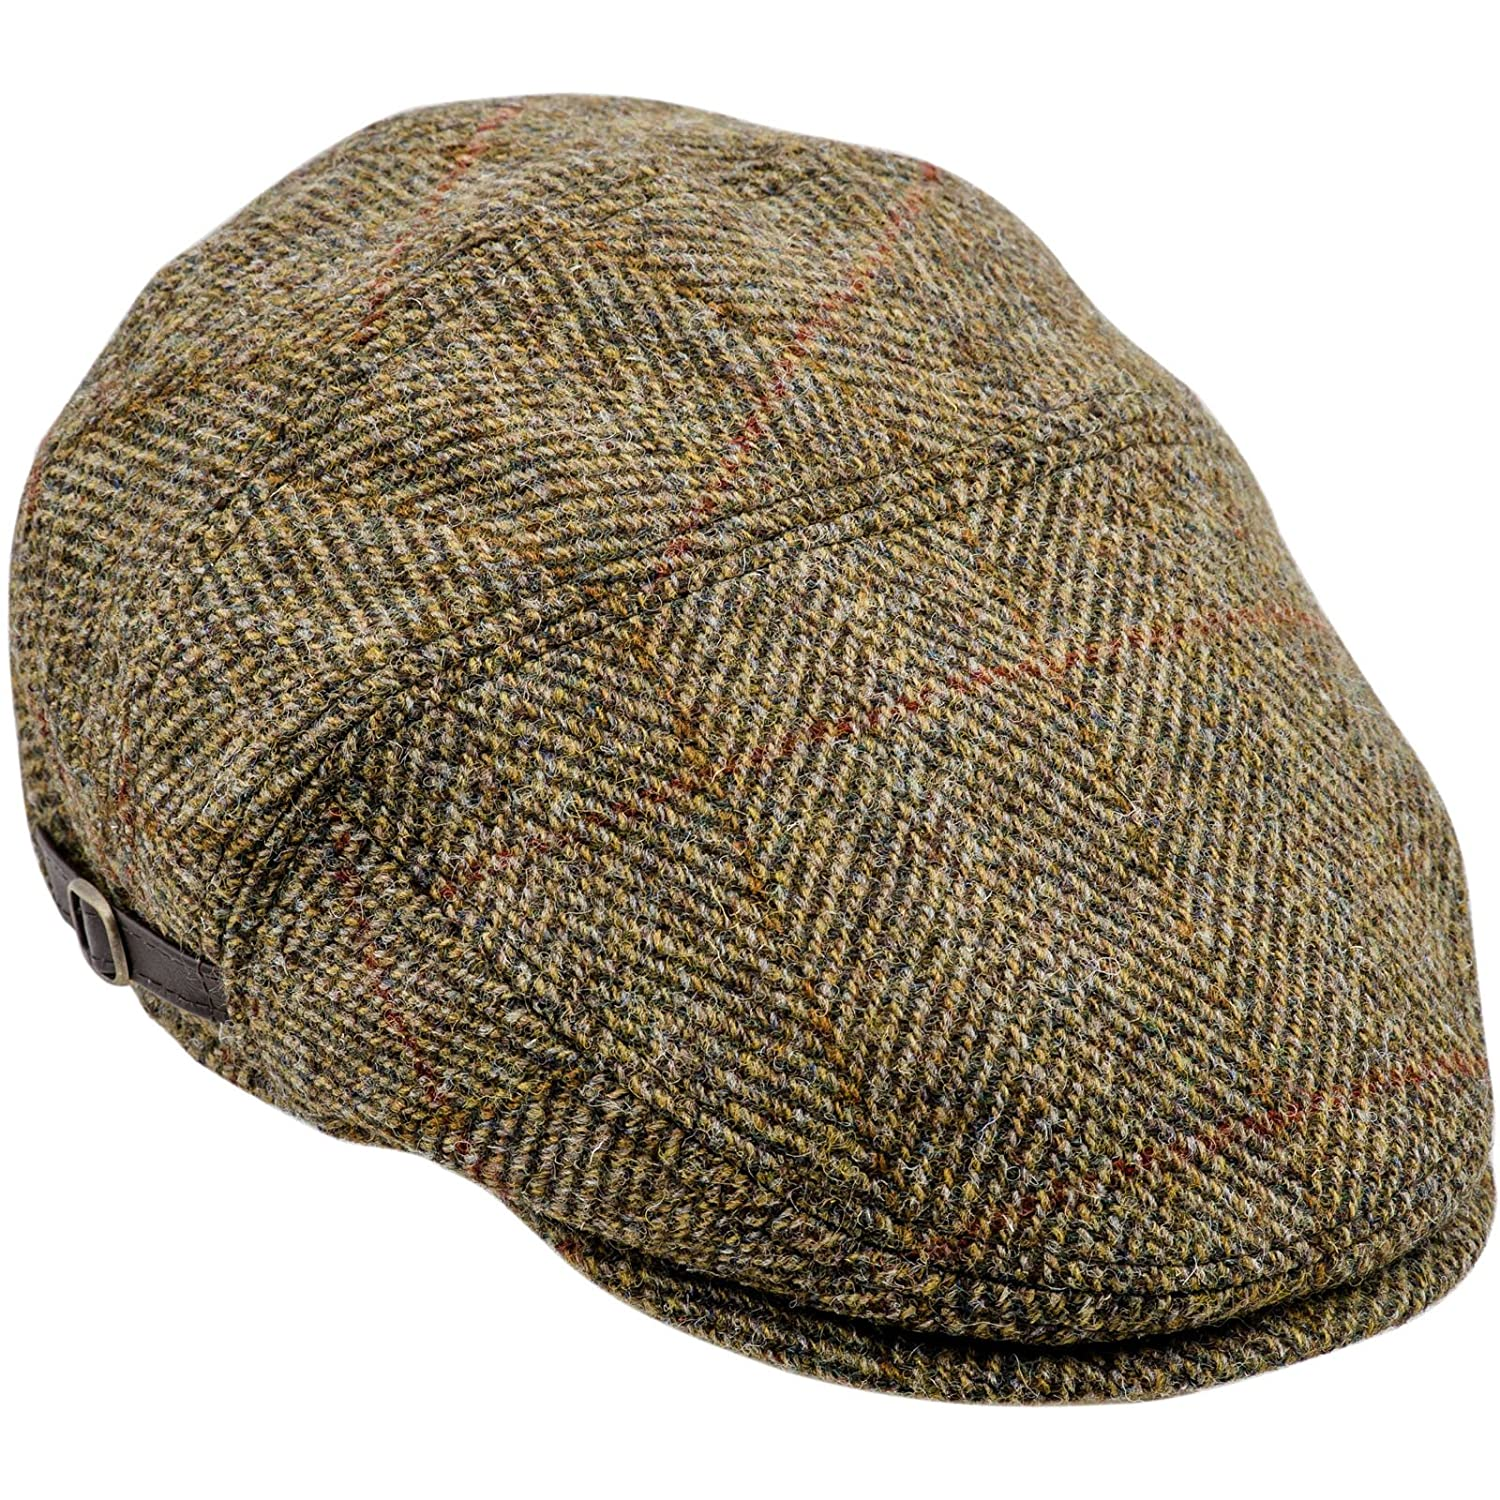 Sterkowski Harris Tweed Ivy League Classic Flat Cap KSK-KZI-Hv1US 8 1/8 $P